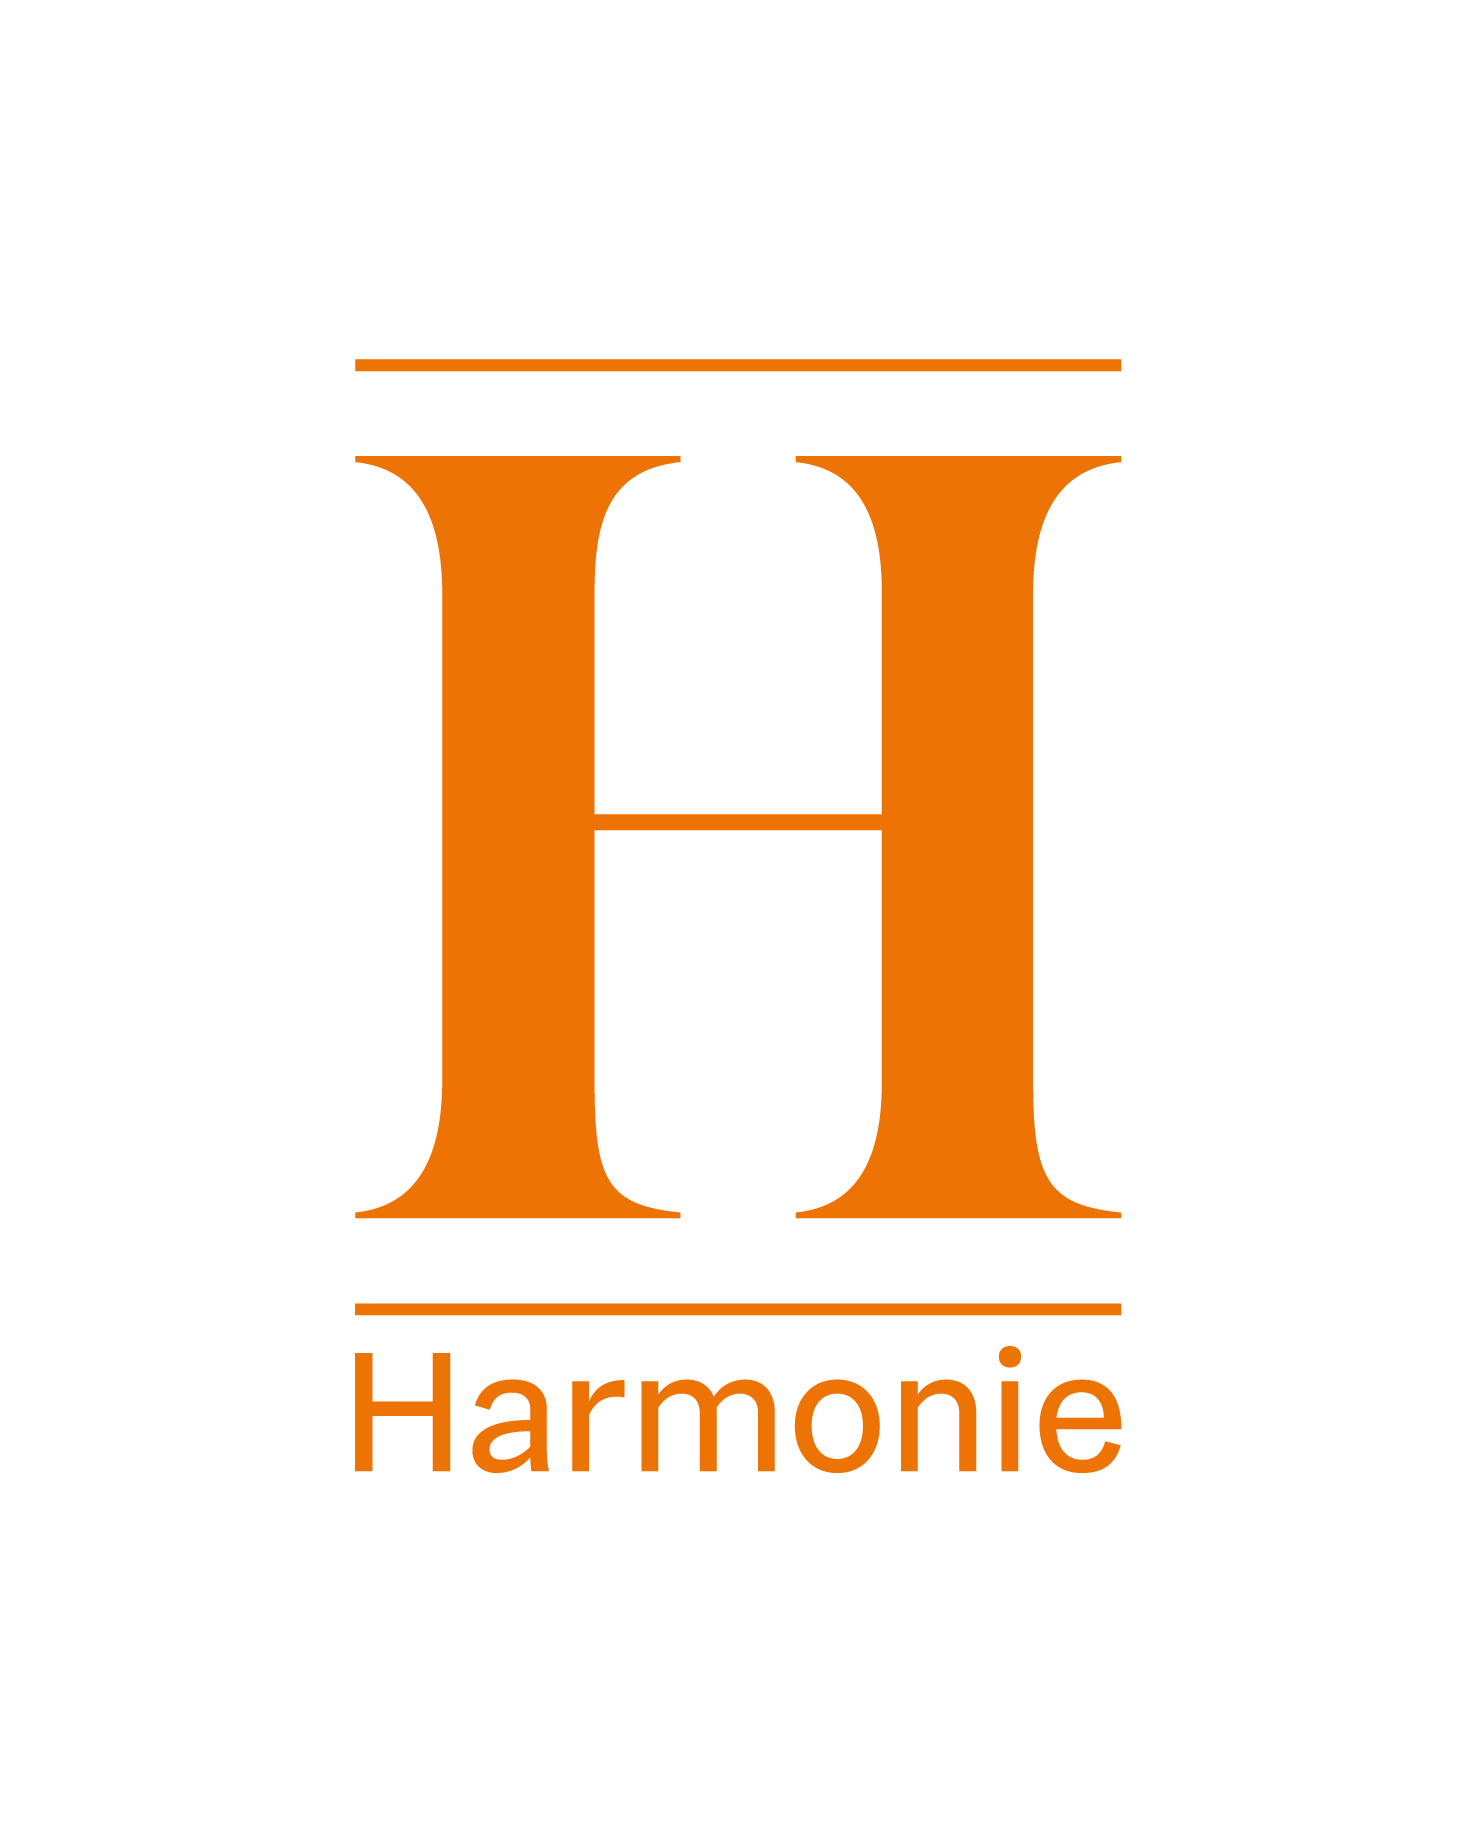 Harmonie_LOGO_ORANGE-01